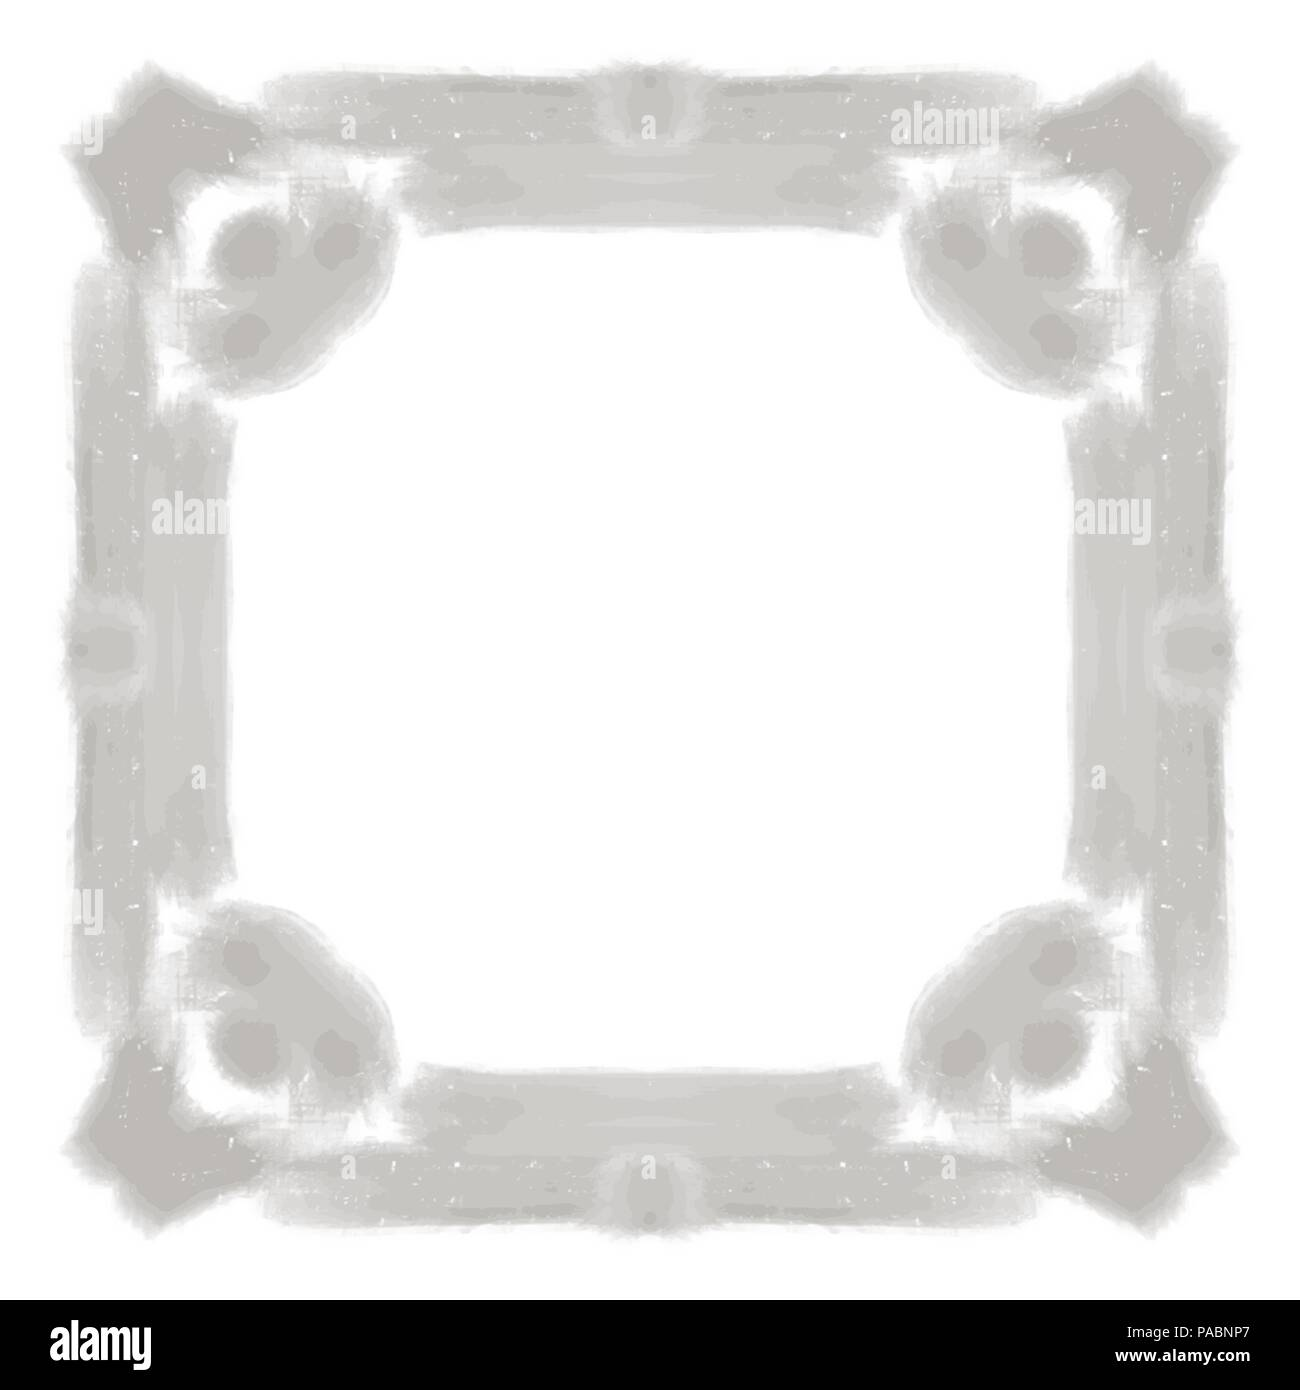 Oval Frame Stock Photos & Oval Frame Stock Images - Page 6 - Alamy